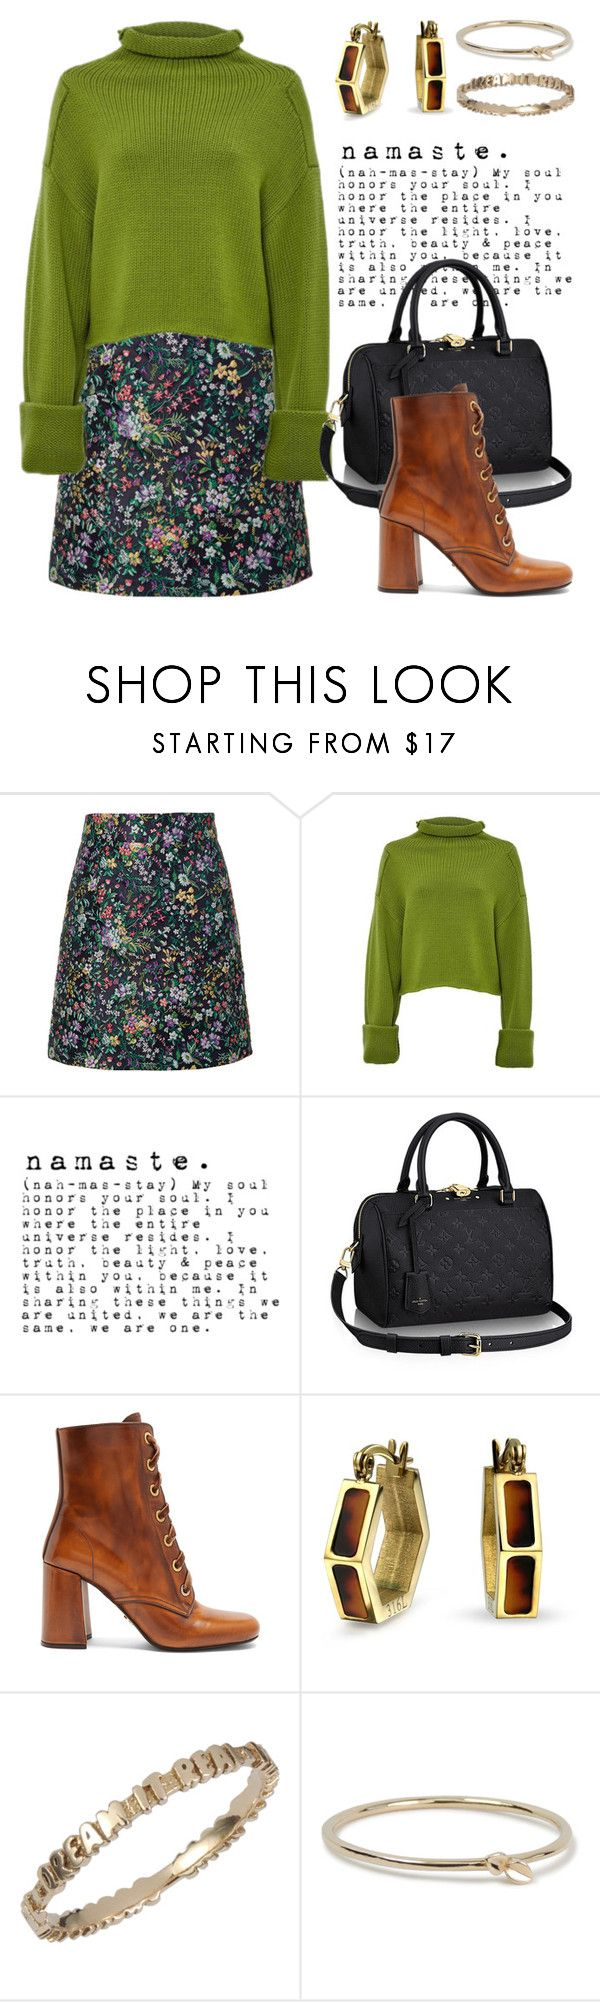 """Dark Florals!!!"" by boxthoughts ❤ liked on Polyvore featuring TIBI, Amanda Wakeley, Prada, Bling Jewelry and boxthoughts"